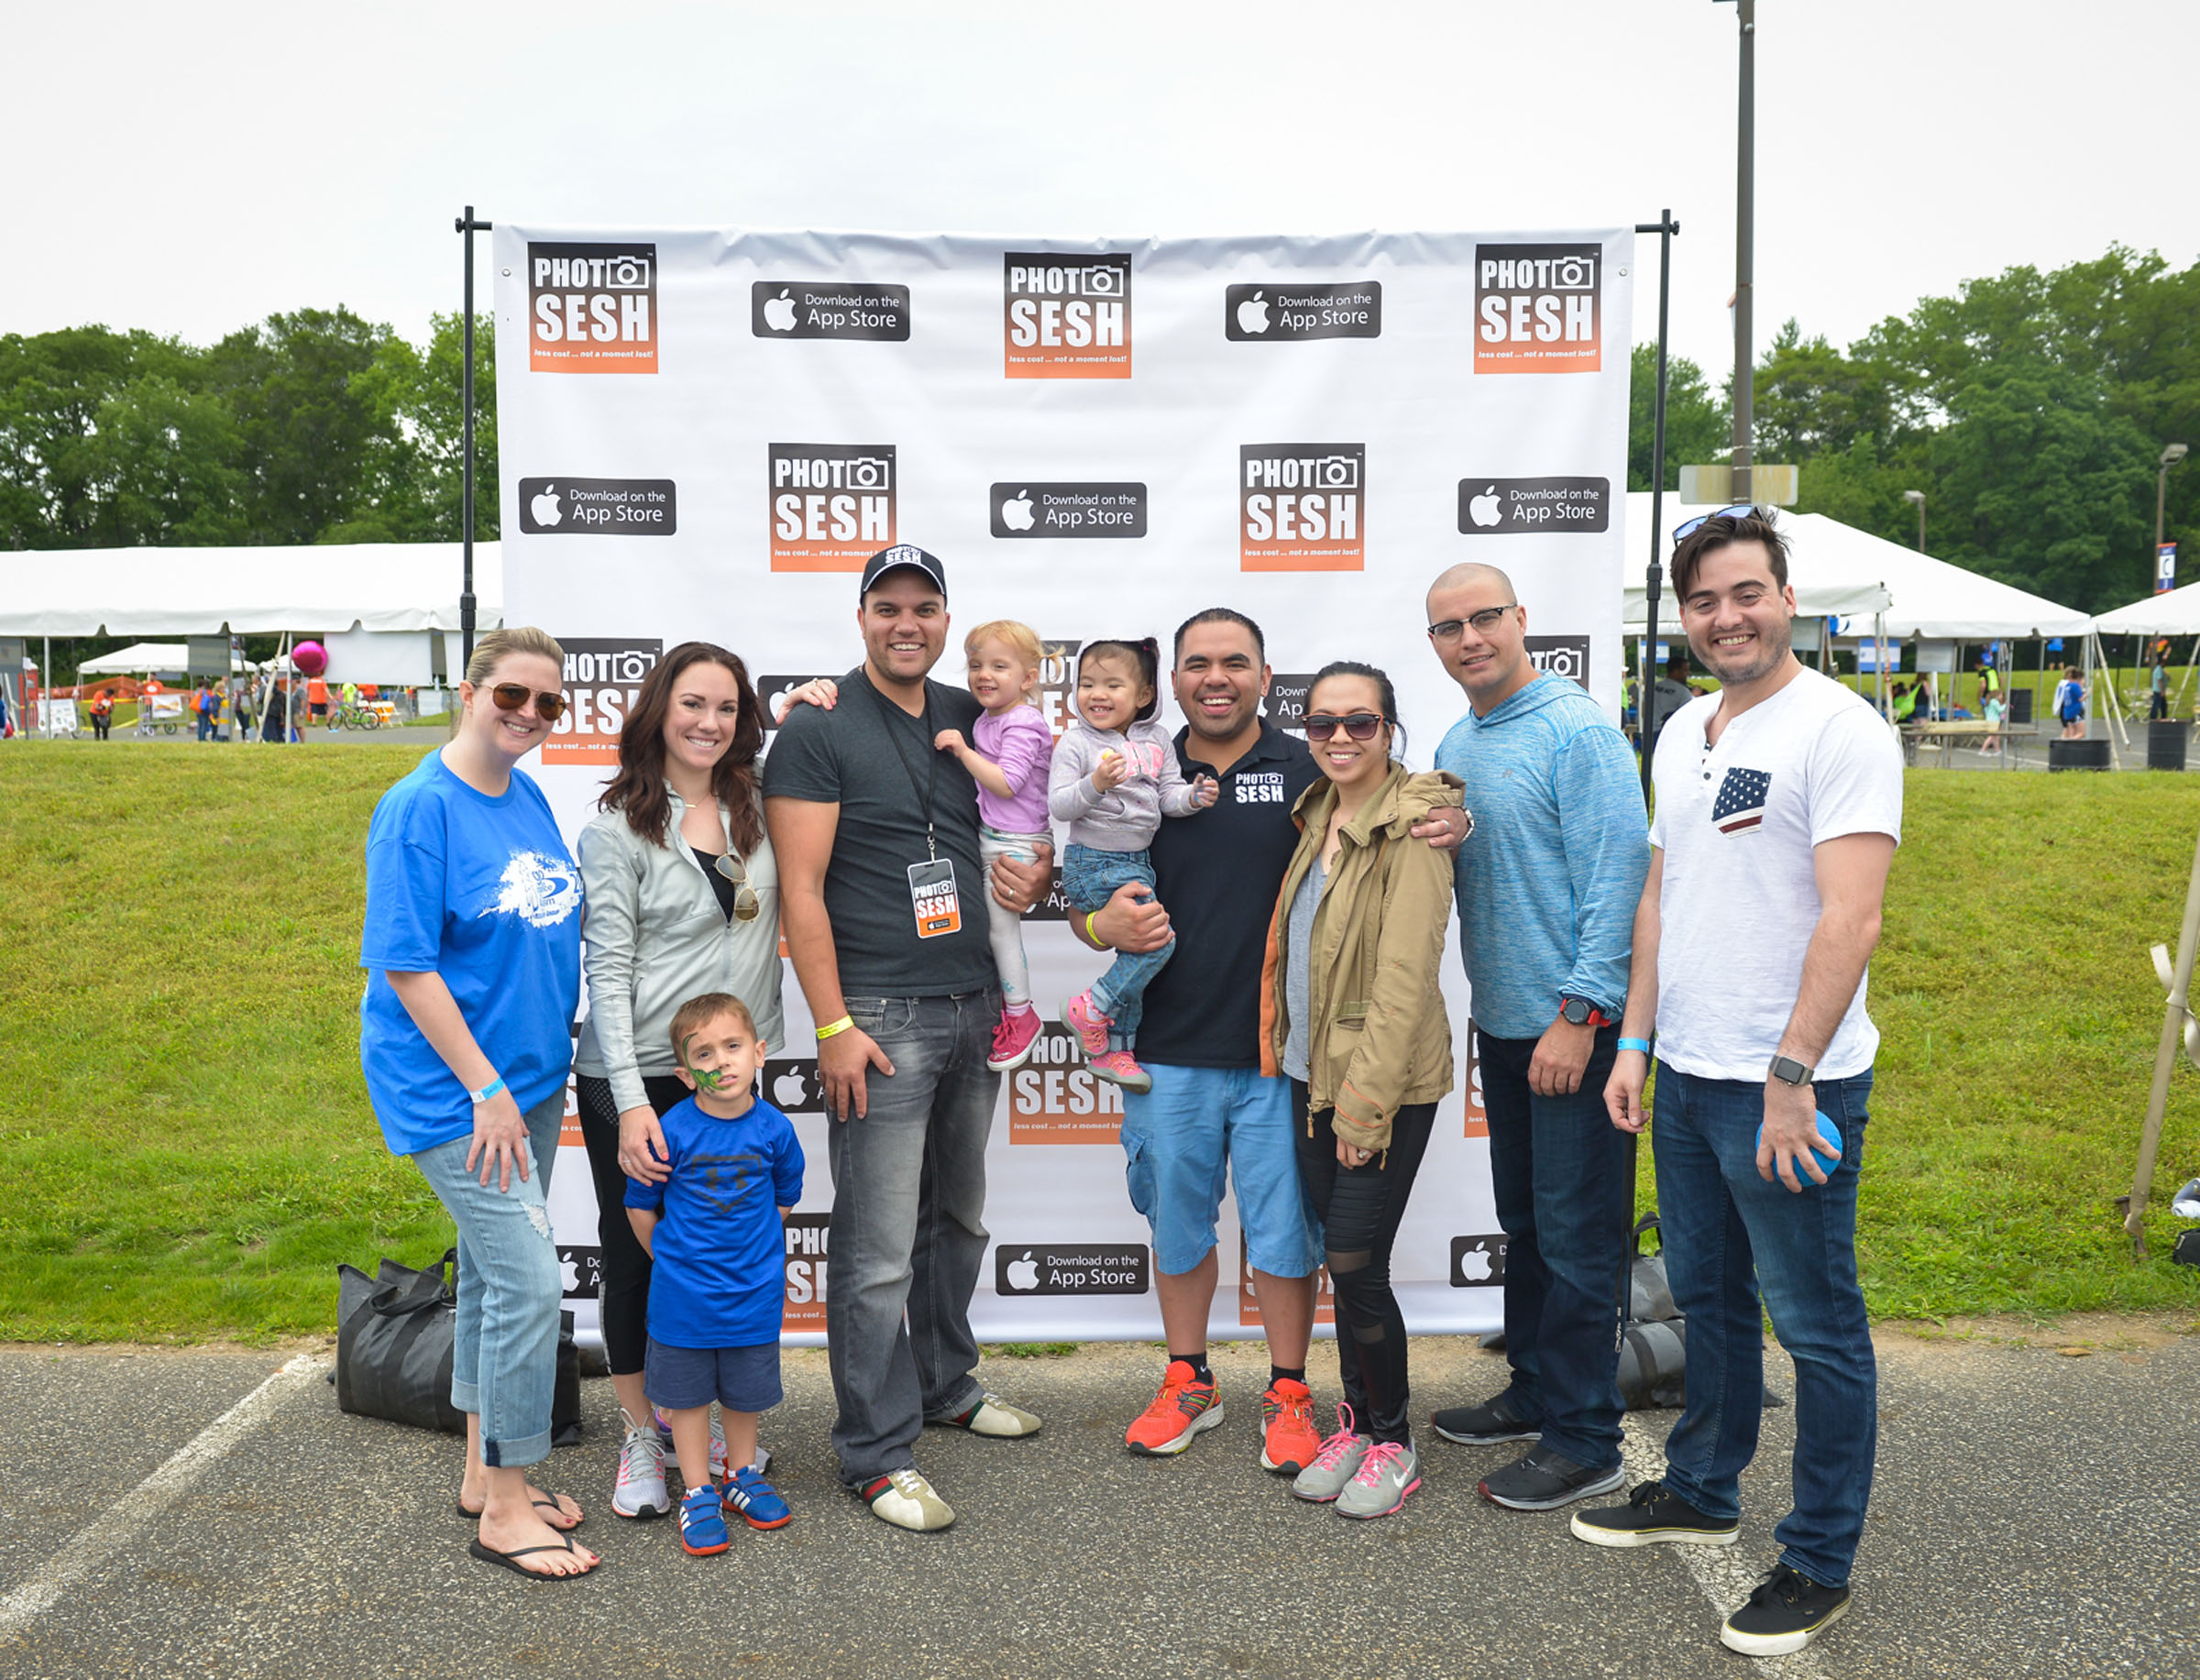 2017-06-04 GTD4A Charity Bike Ride - BCC - Paramus NJ-2600.jpg